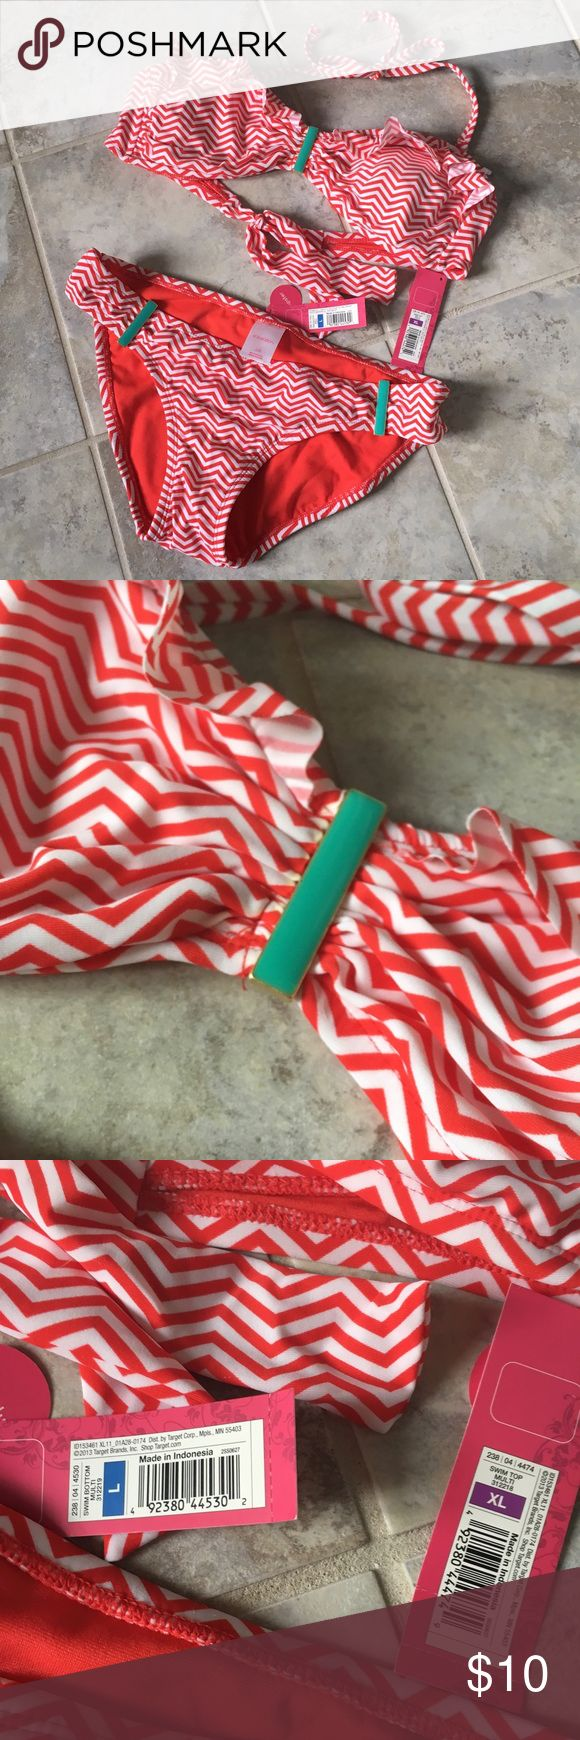 NWT Target Xhilaration red/white chevron Bikini NWT Target Xhilaration red/white chevron Bikini with turquoise details, top size XL, bottom size Lg. never worn, new with tags and liner Xhilaration Swim Bikinis